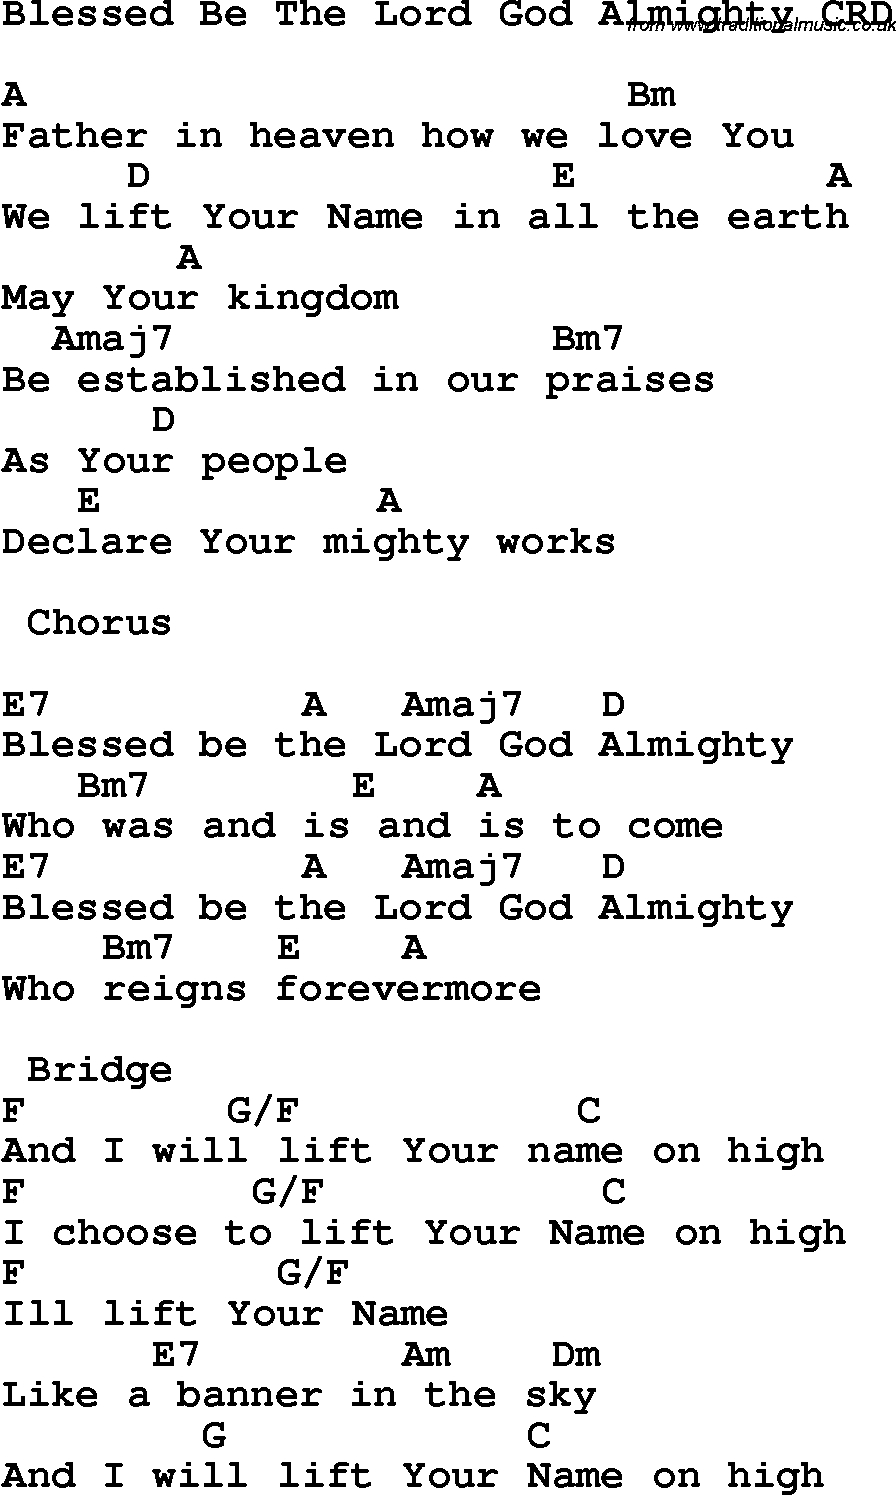 Lord I Lift Your Name On High Chords Christian Childrens Song Blessed Be The Lord God Almighty Lyrics